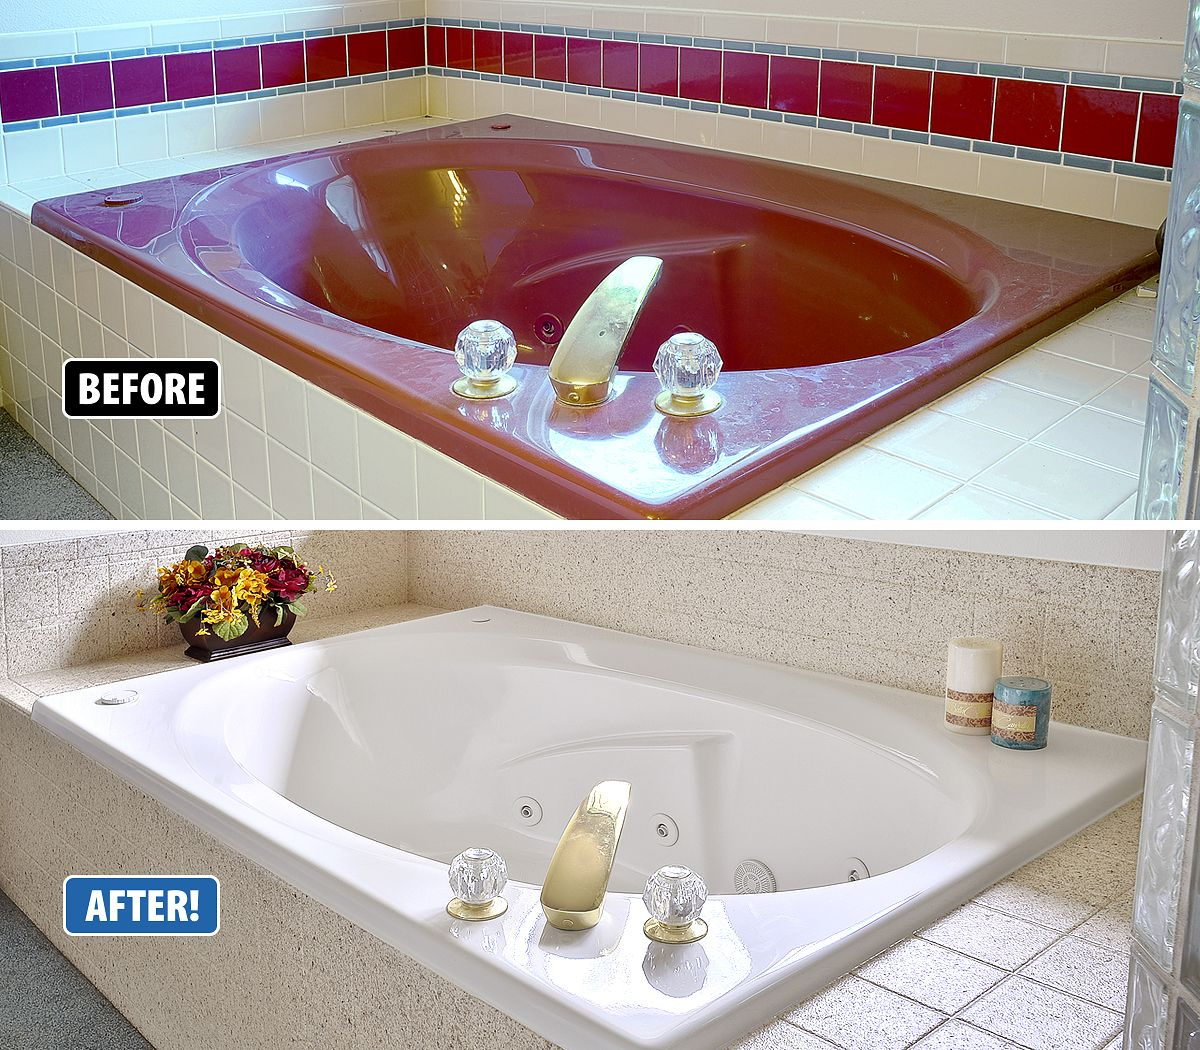 Miracle Method Transformed This Outdated Jacuzzi Tub To Look Like